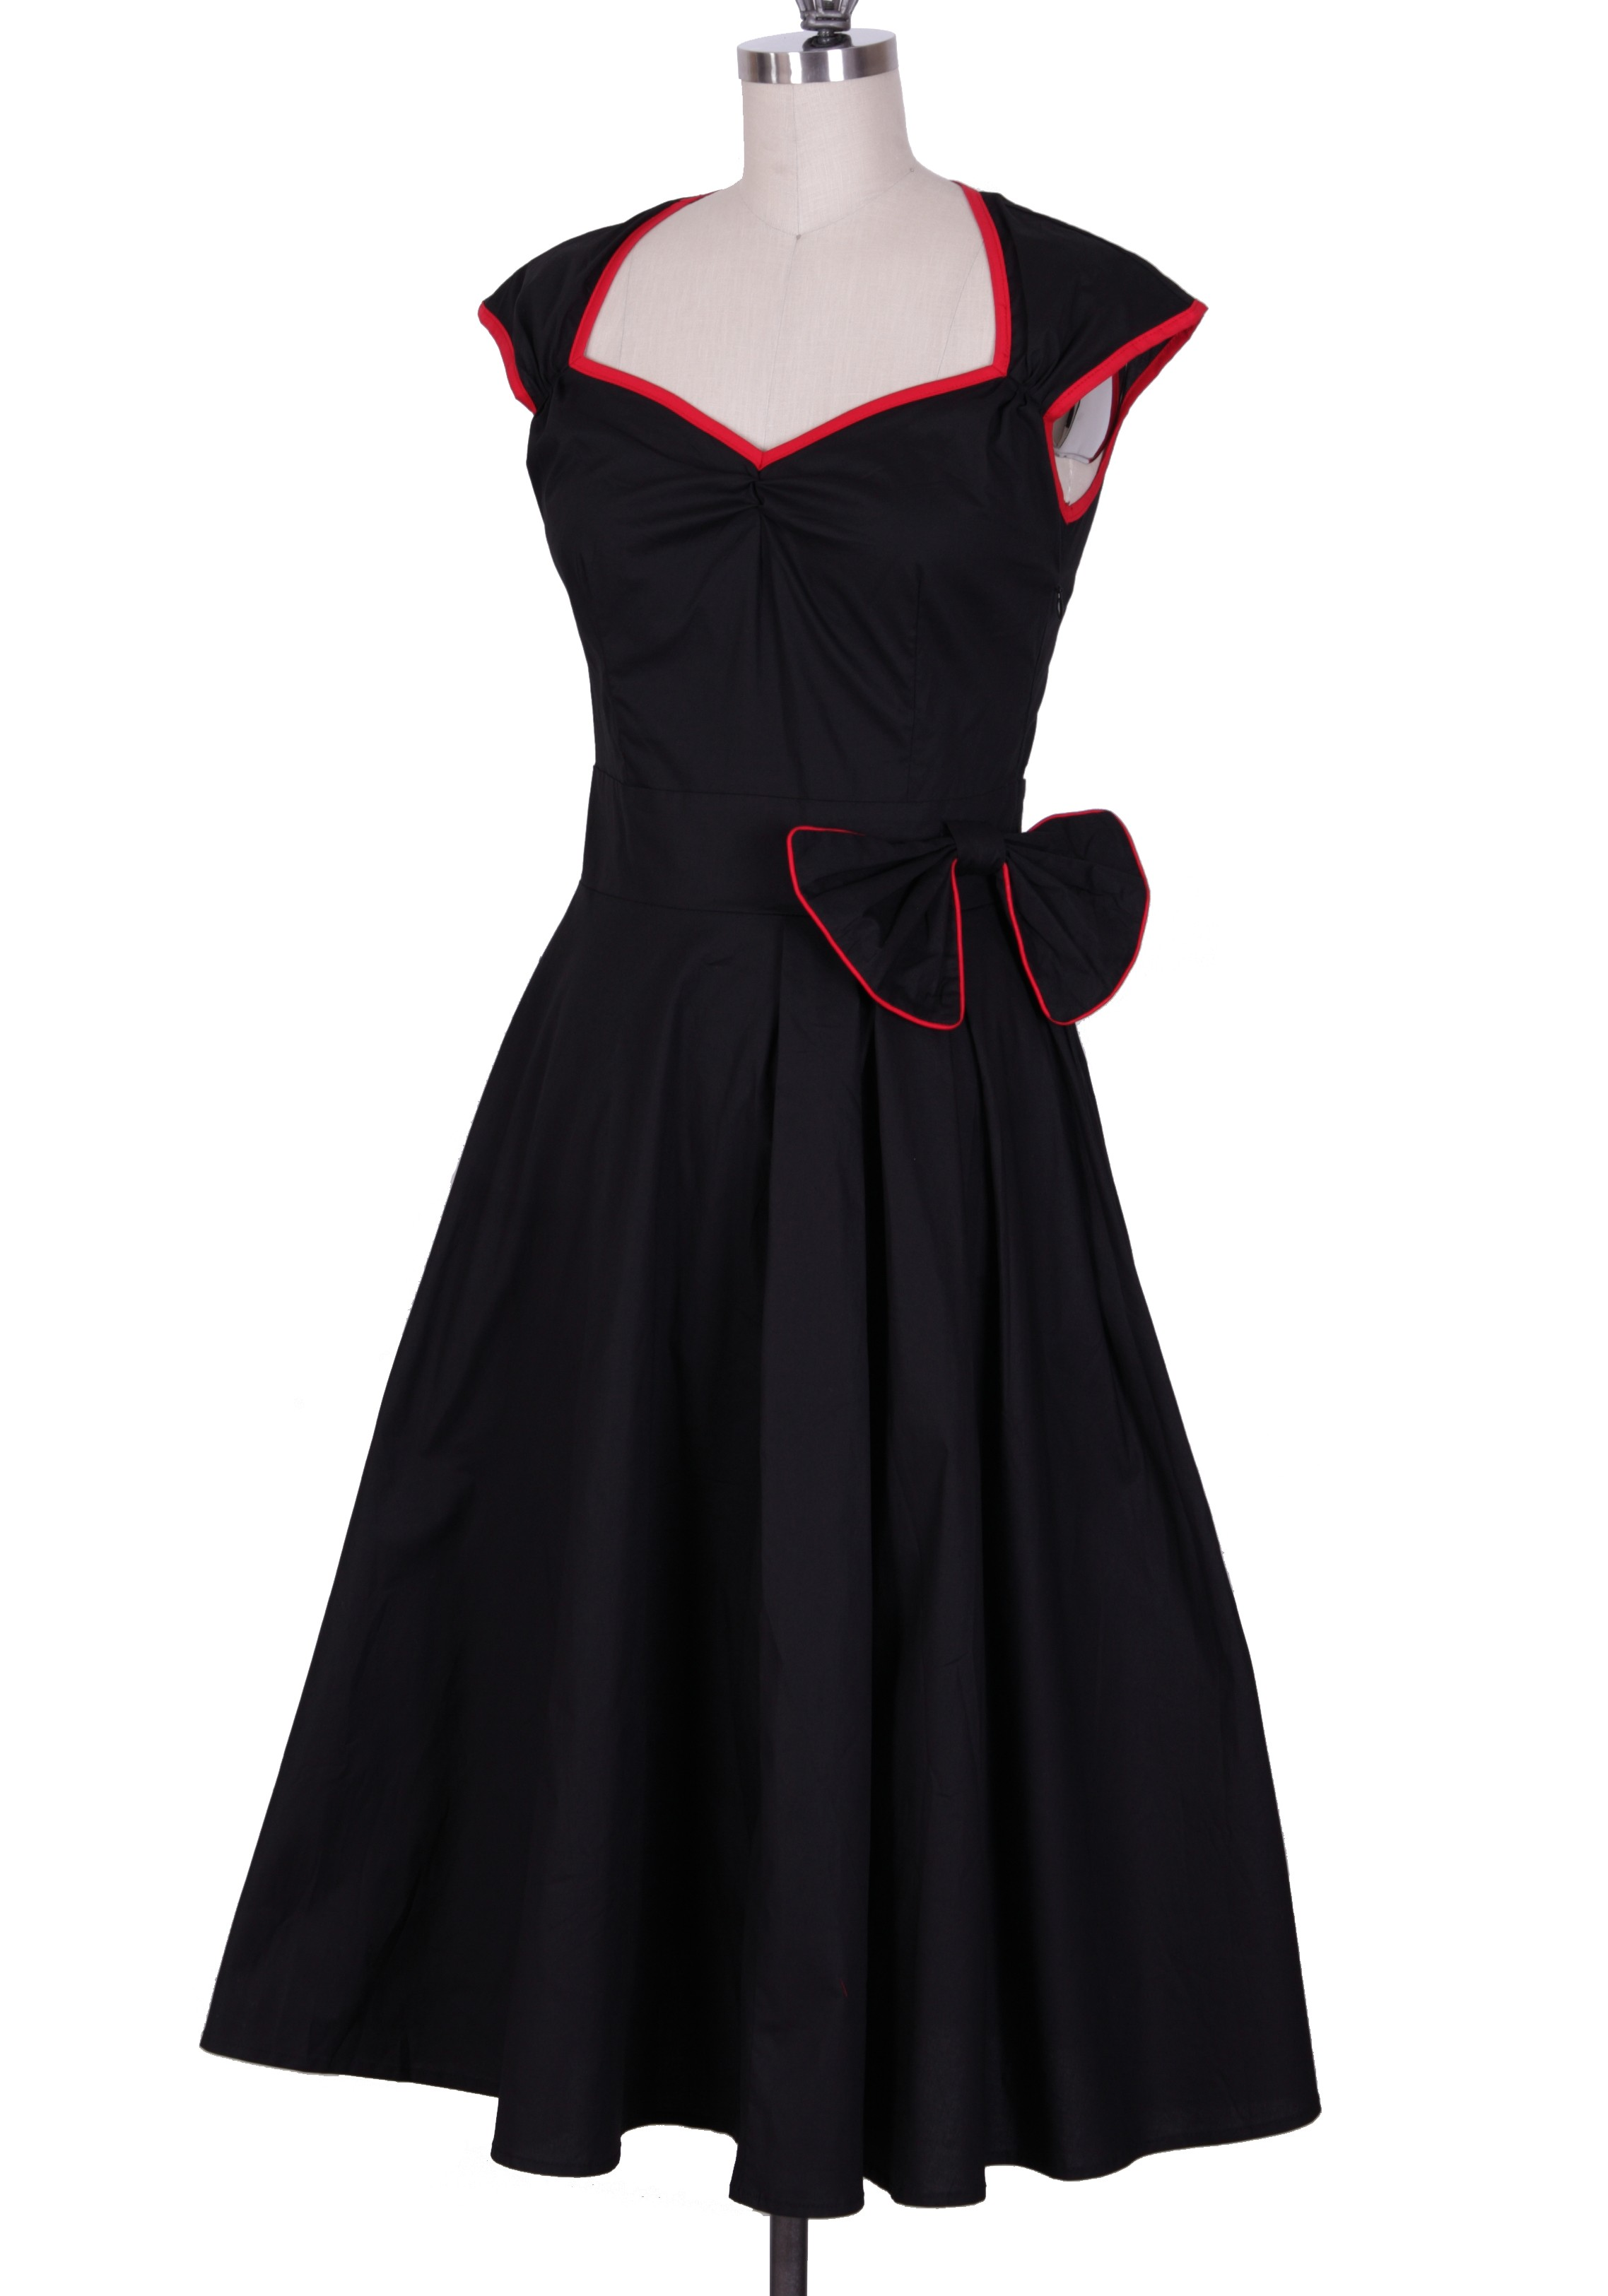 Take A Bow Rockabilly Party Housewife 50s Dress | ReoRia